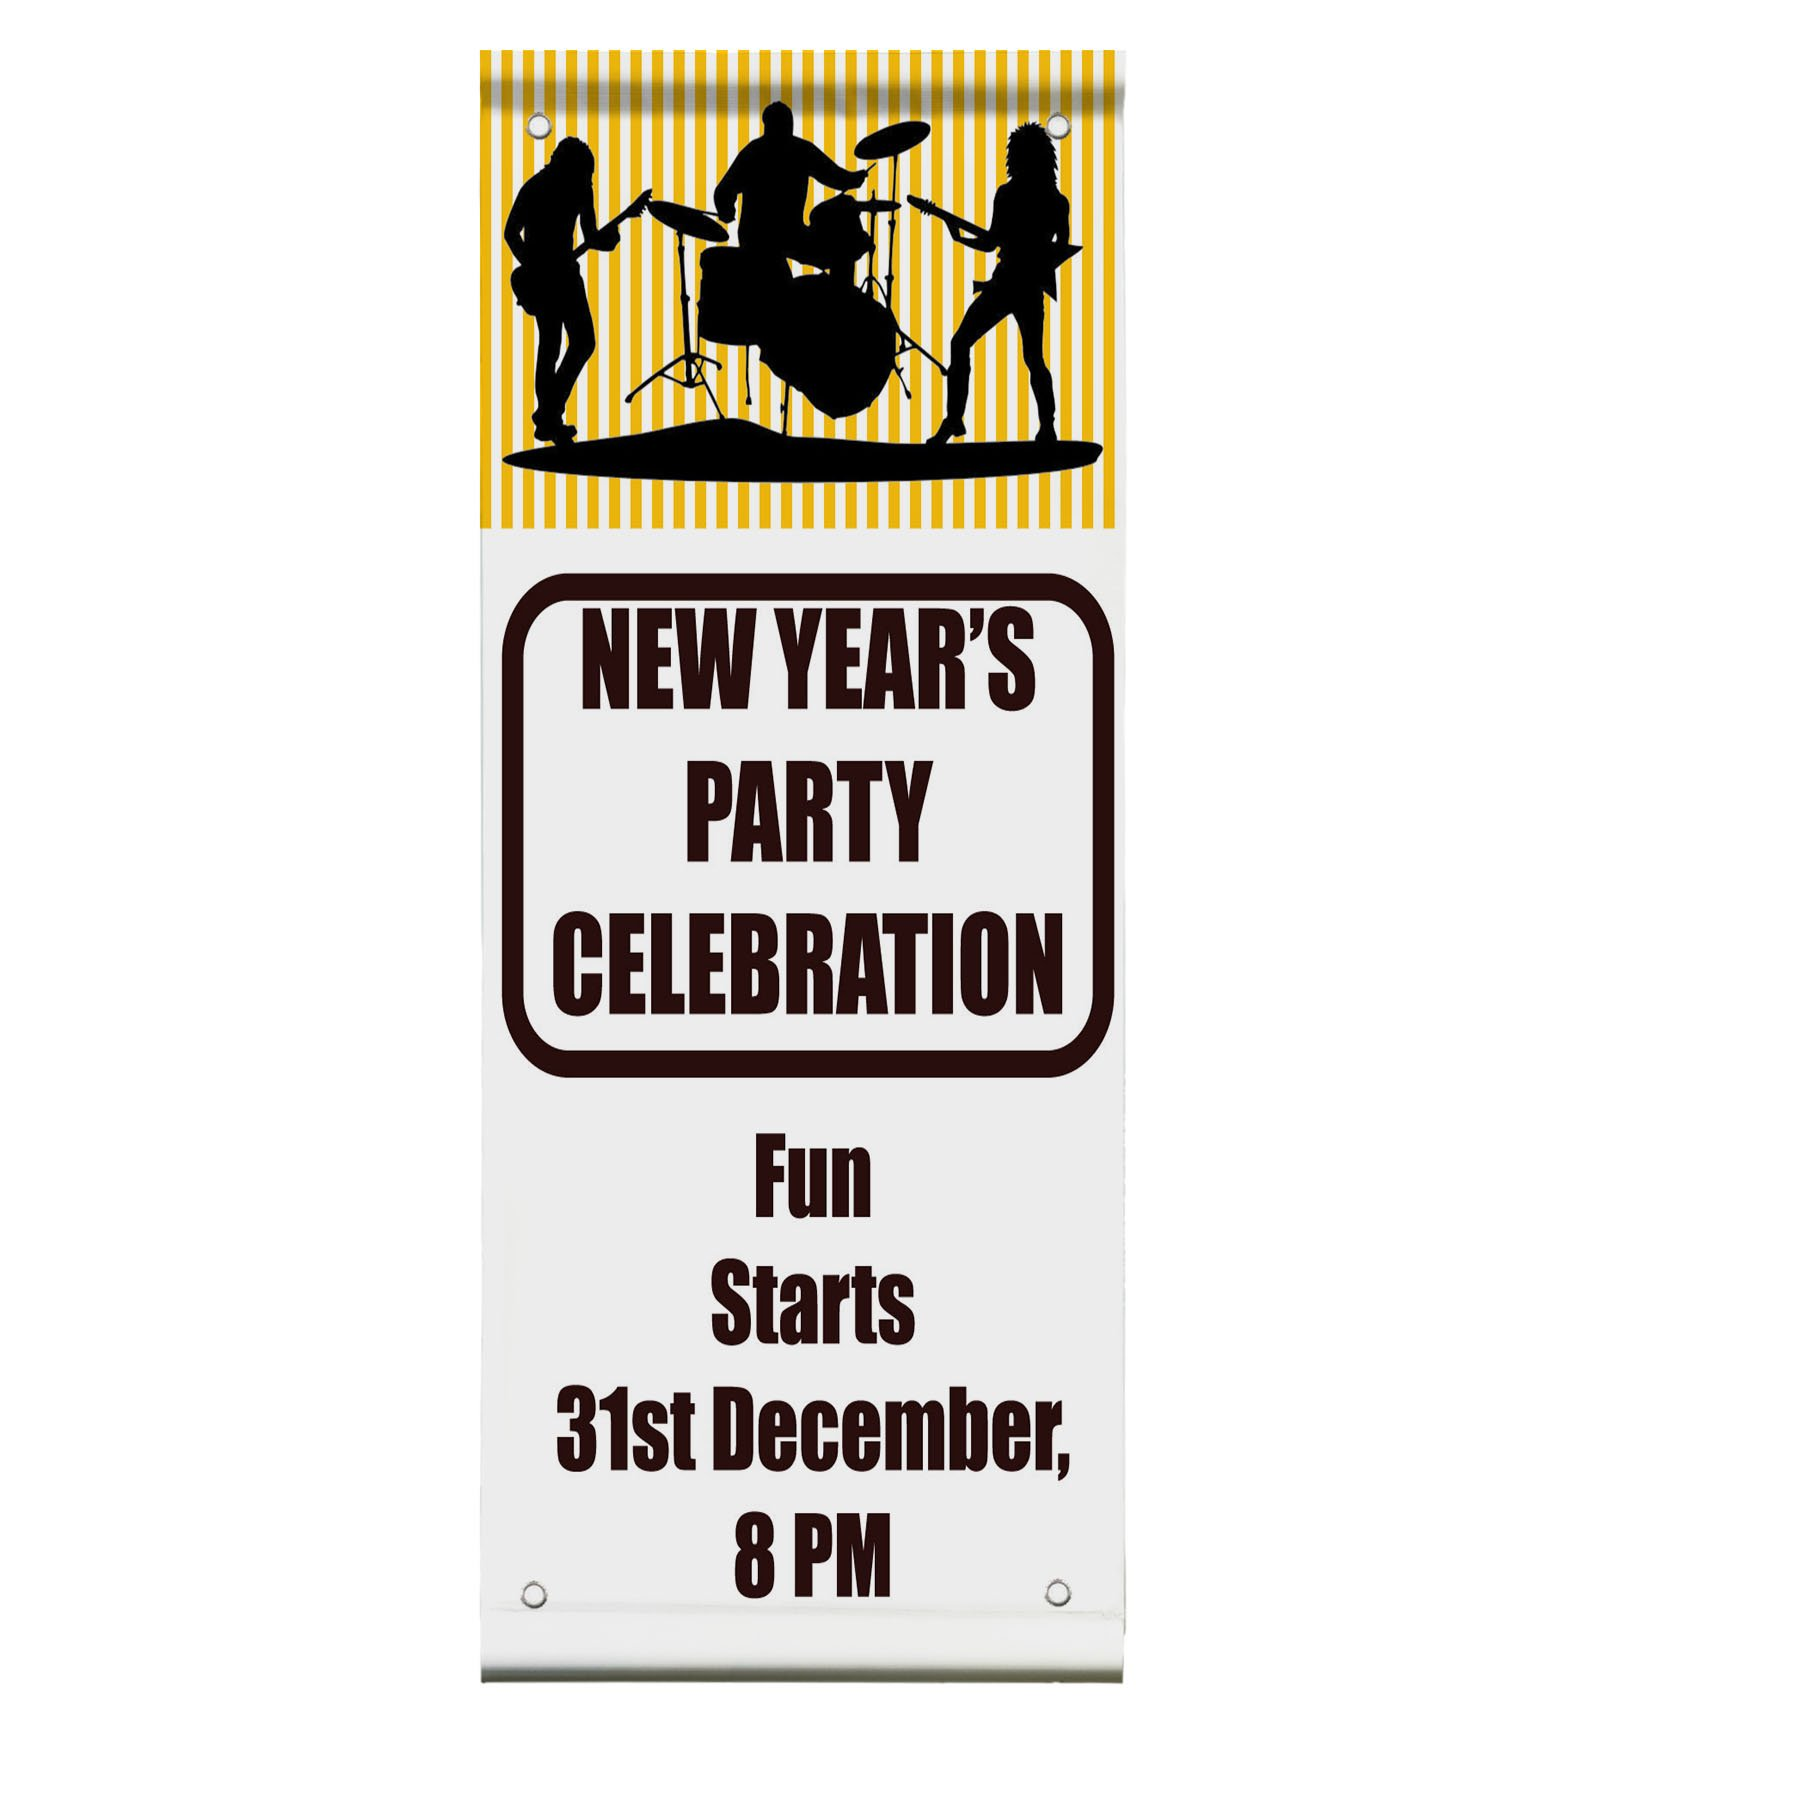 New Year'S Party Celebration Custom Time Double Sided Vertical Pole Banner Sign 24 in x 36 in w/ Wall Bracket